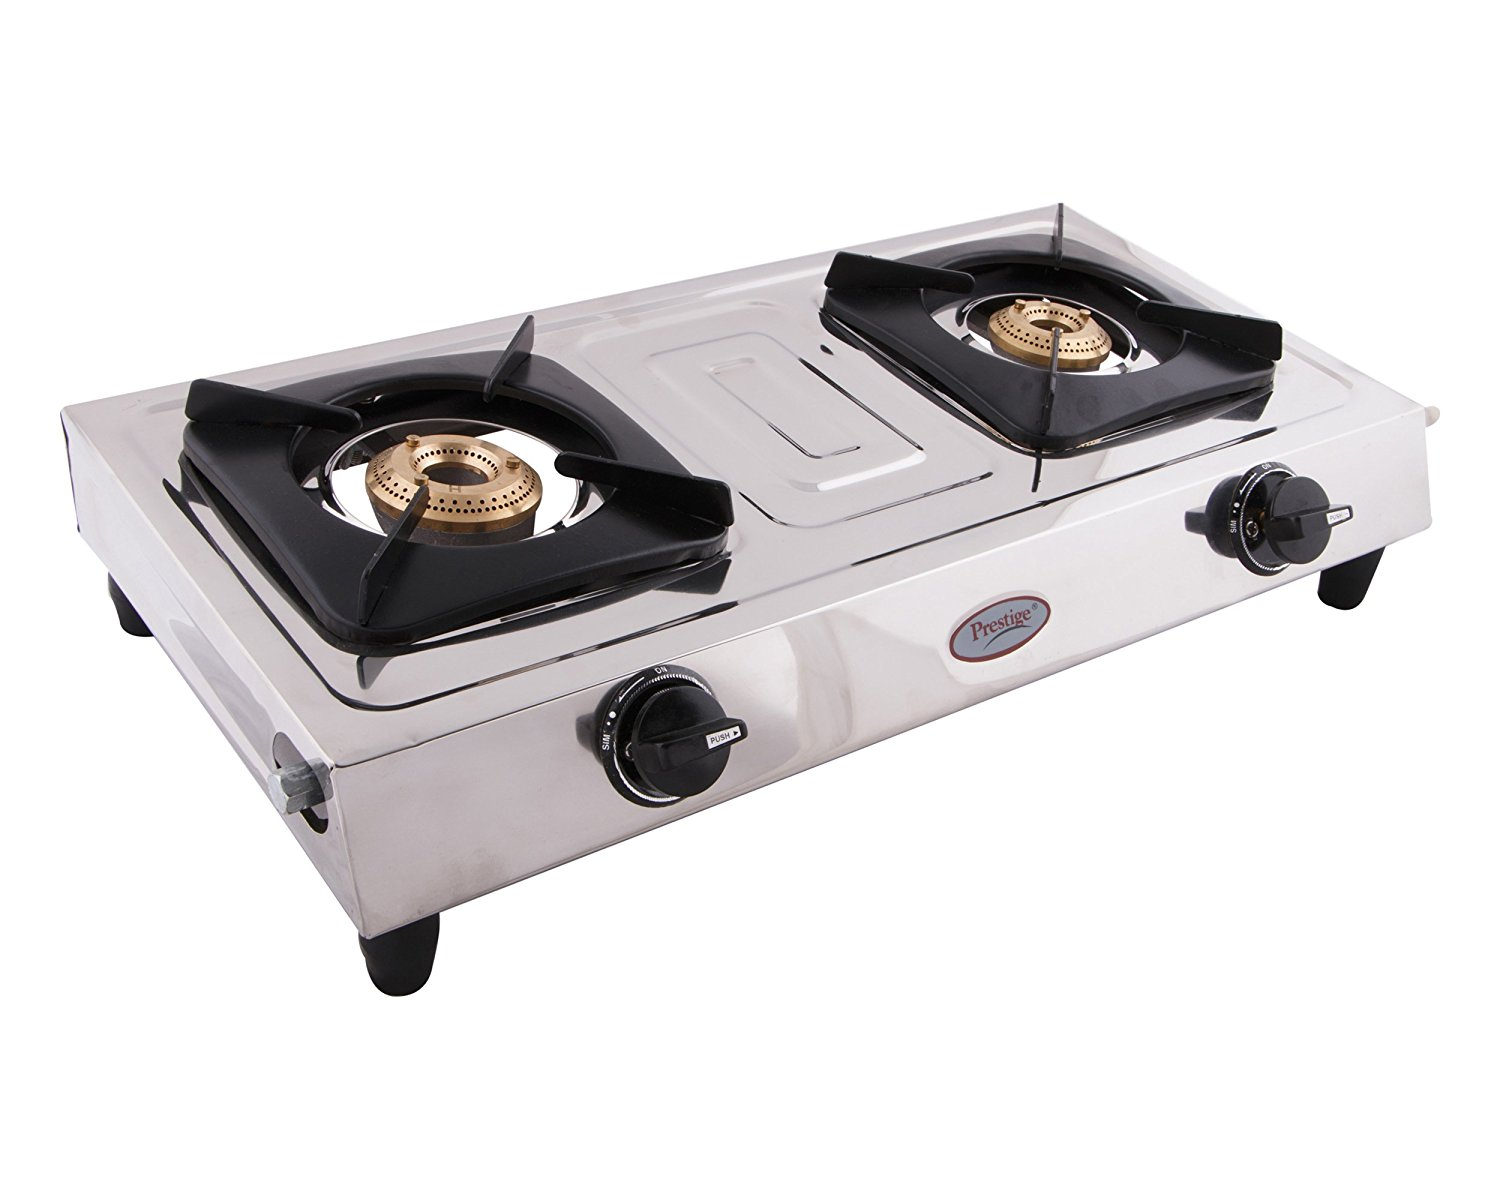 Buy Prestige Star Stainless Steel 2 Burner Gas Stove, Metallic Silver  Online at Low Prices in India - Amazon.in - Gas Stove With Cylinder PNG